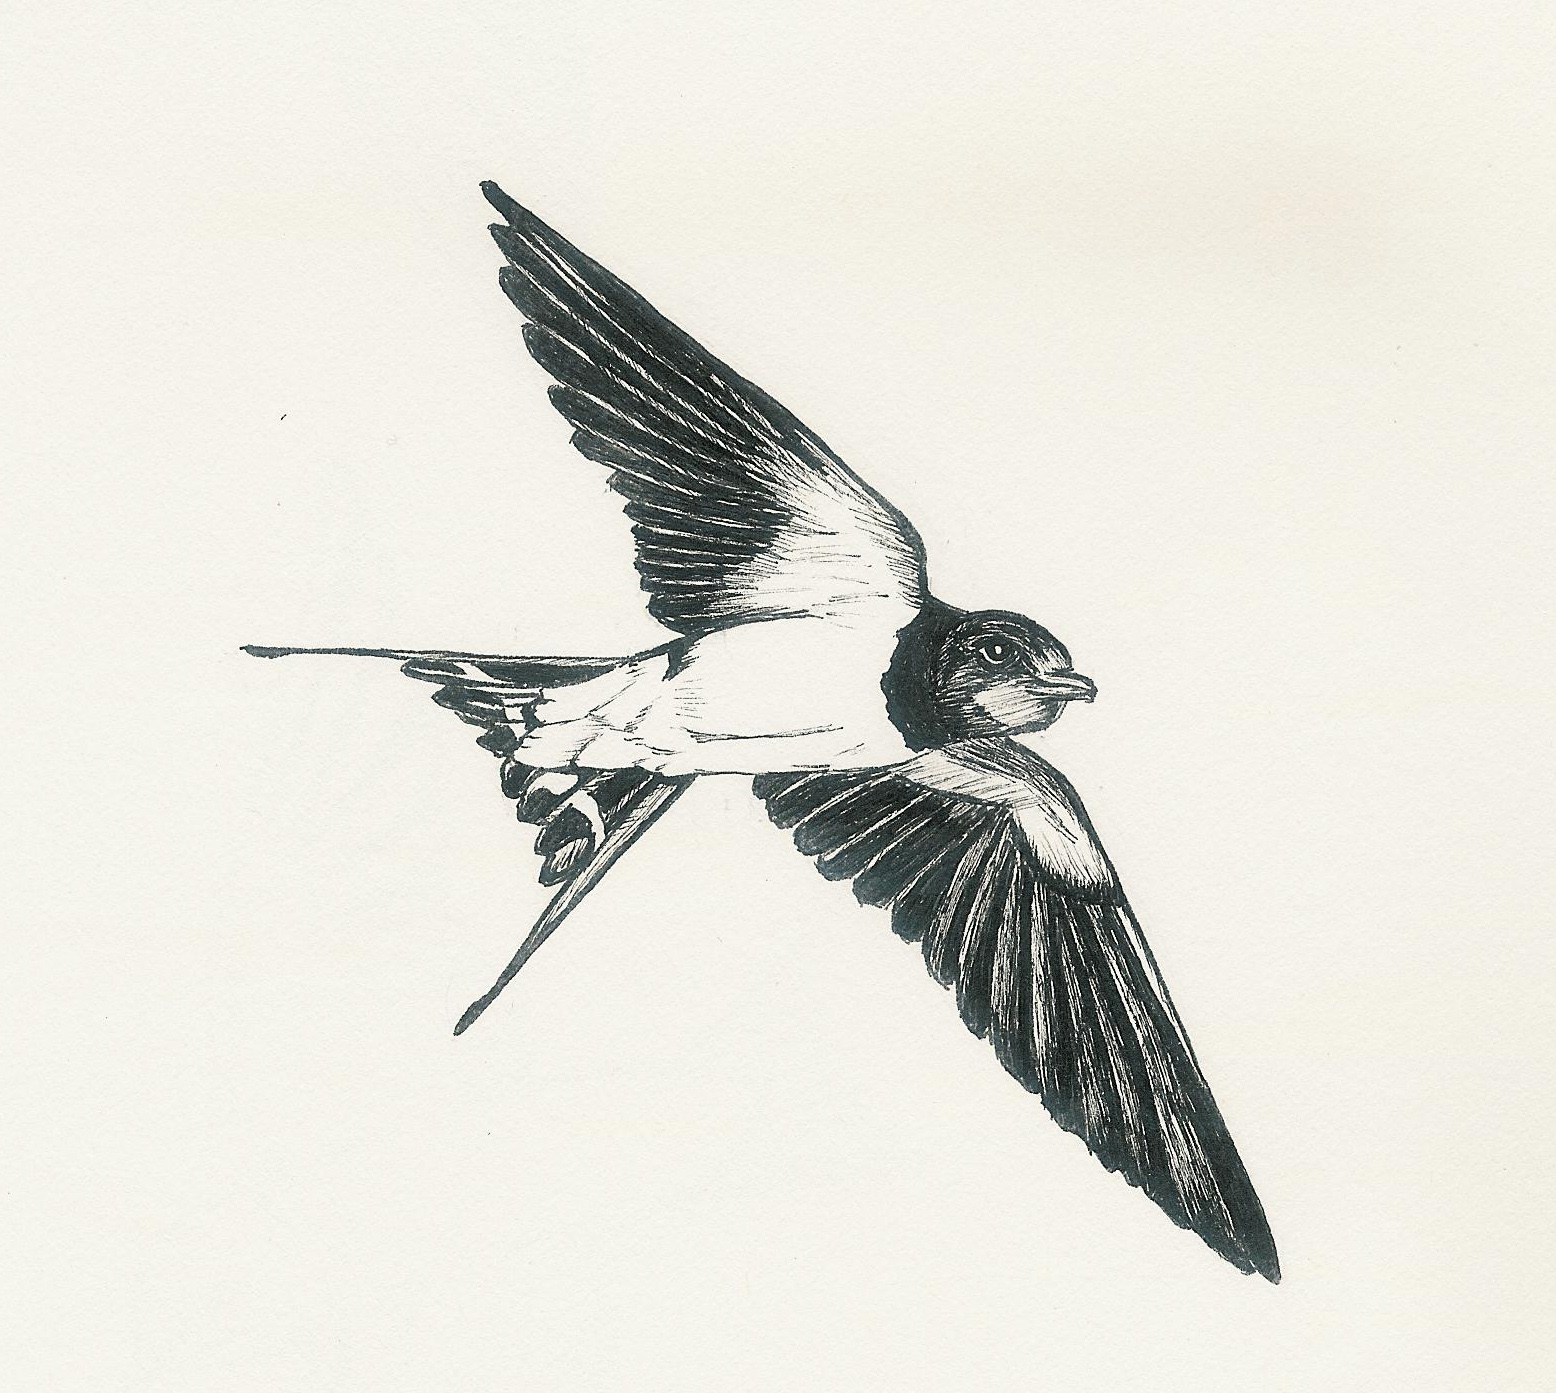 how to draw a flying bird easily